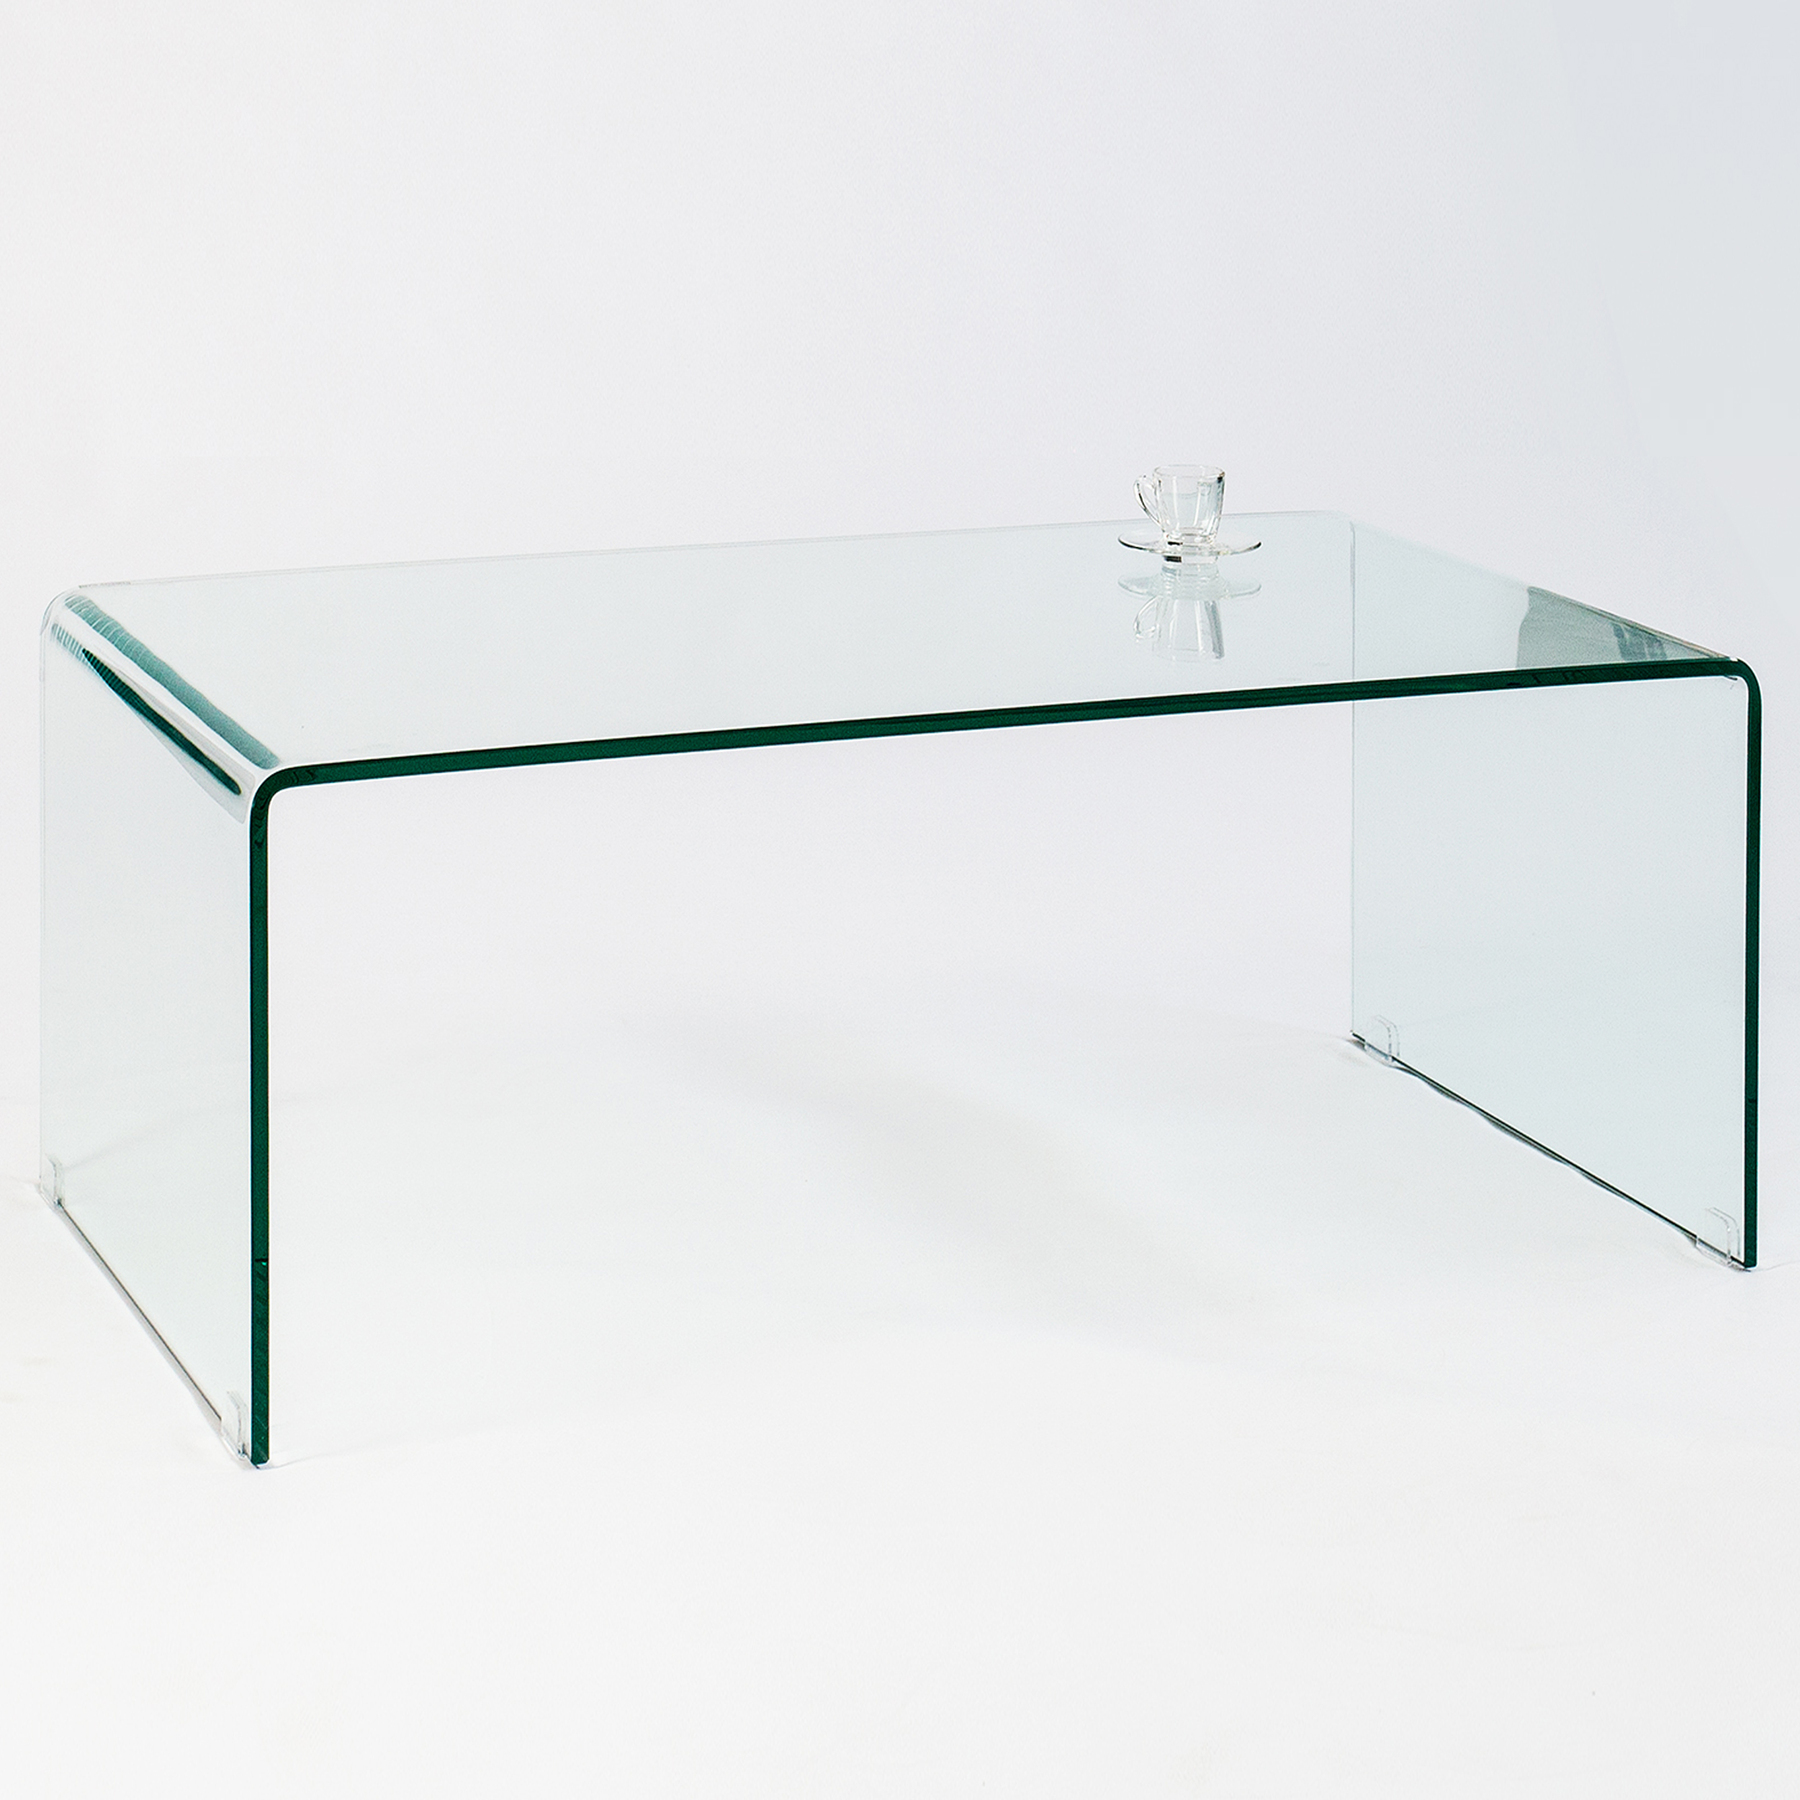 glas couchtisch ghost 110 cm transparent tische glastisch beistelltisch ebay. Black Bedroom Furniture Sets. Home Design Ideas